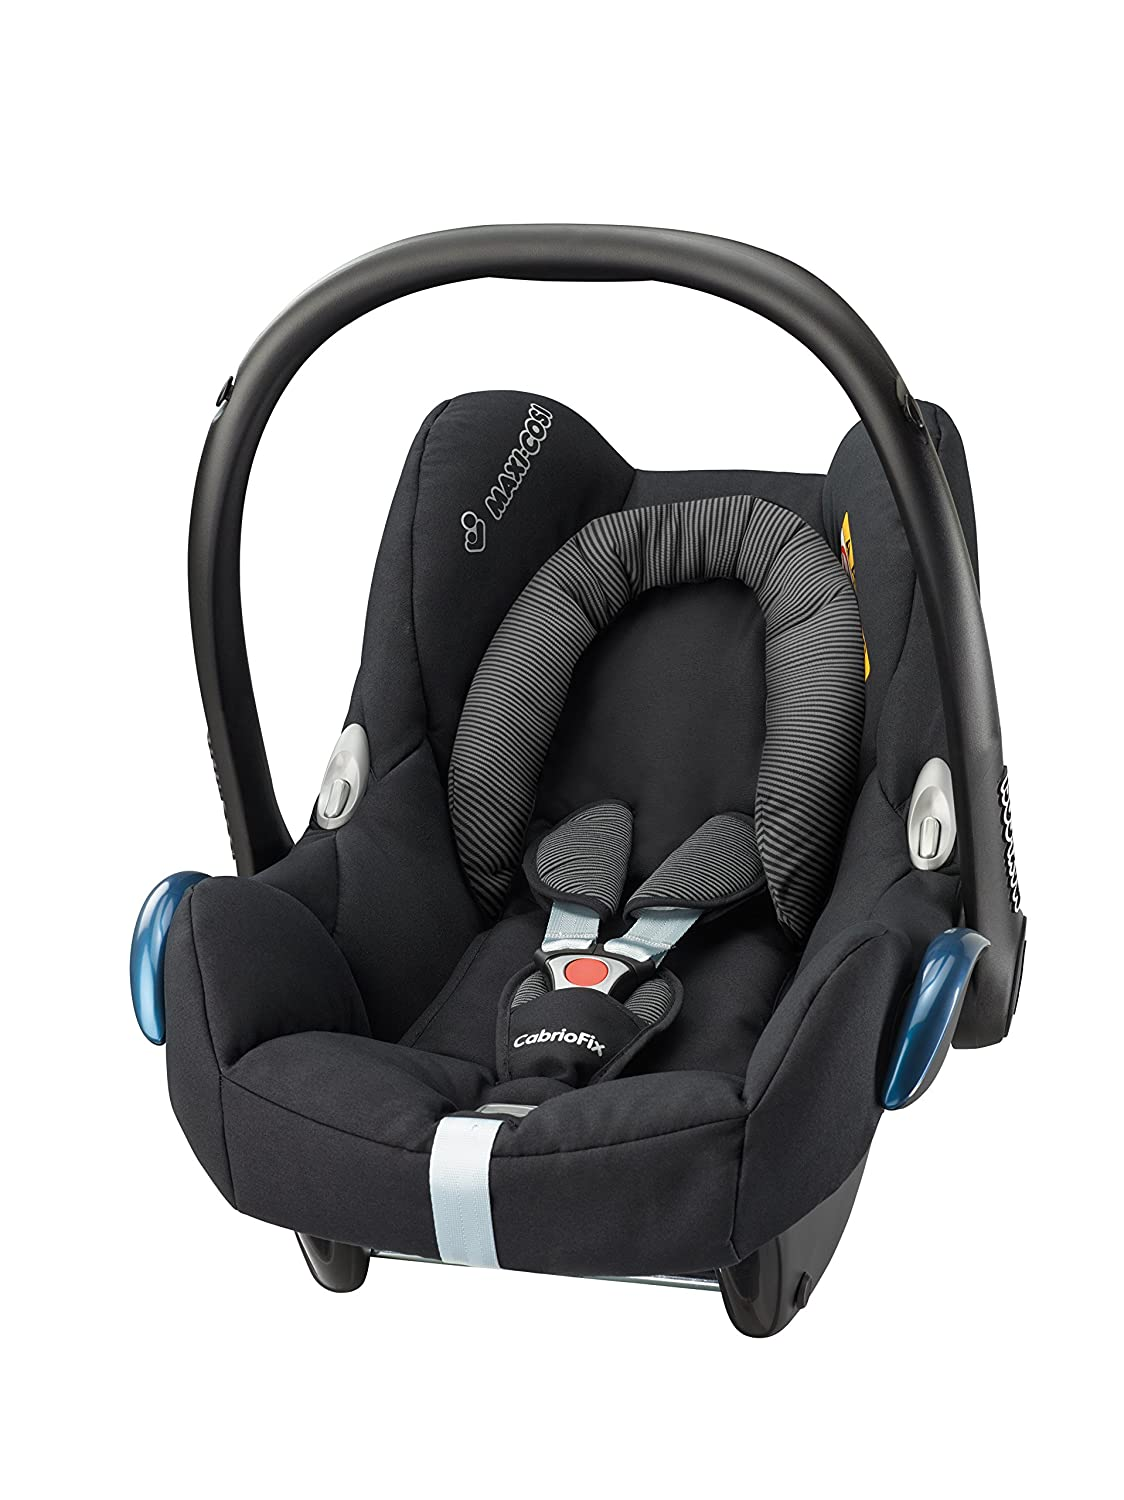 Maxi-Cosi Cabriofix Group 0+ Car Seat, Black Raven: Amazon.co.uk: Baby